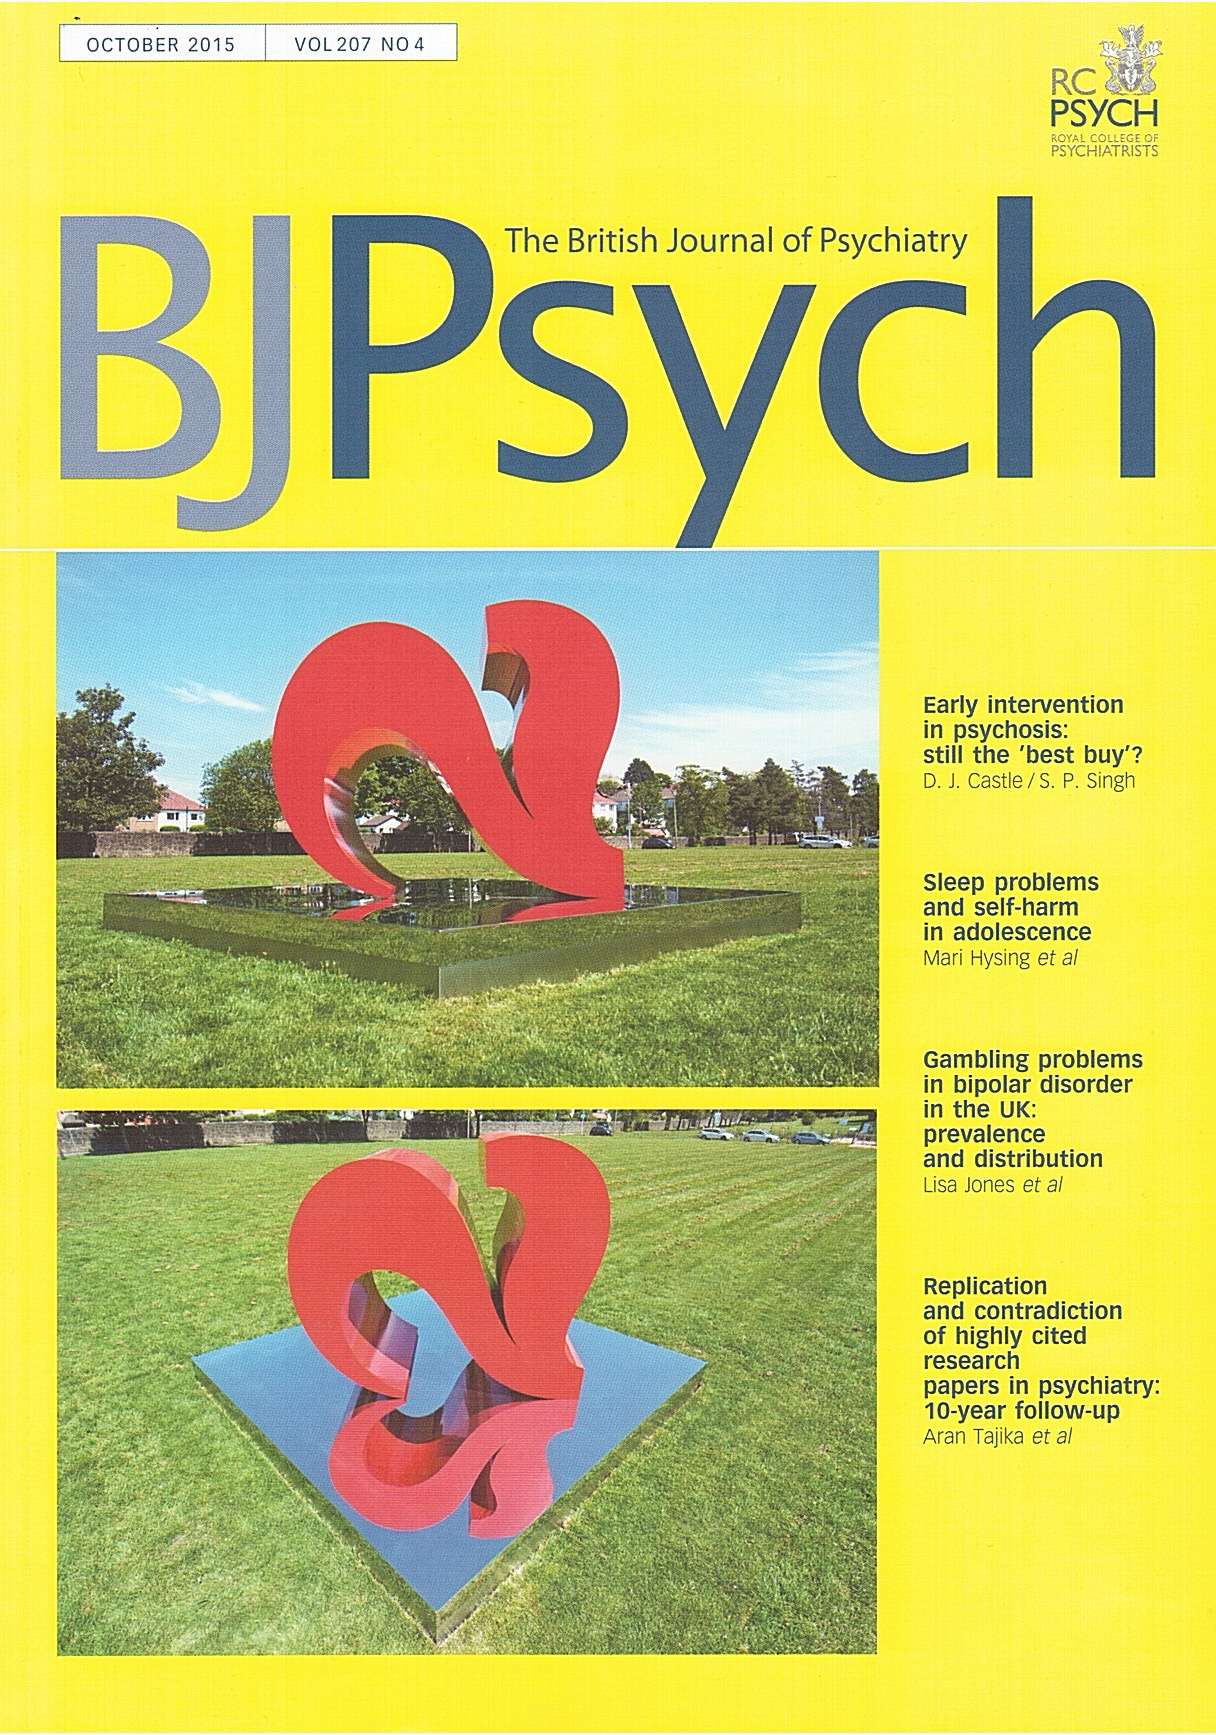 The British Journal of Psychiatry - October 2015 front cover